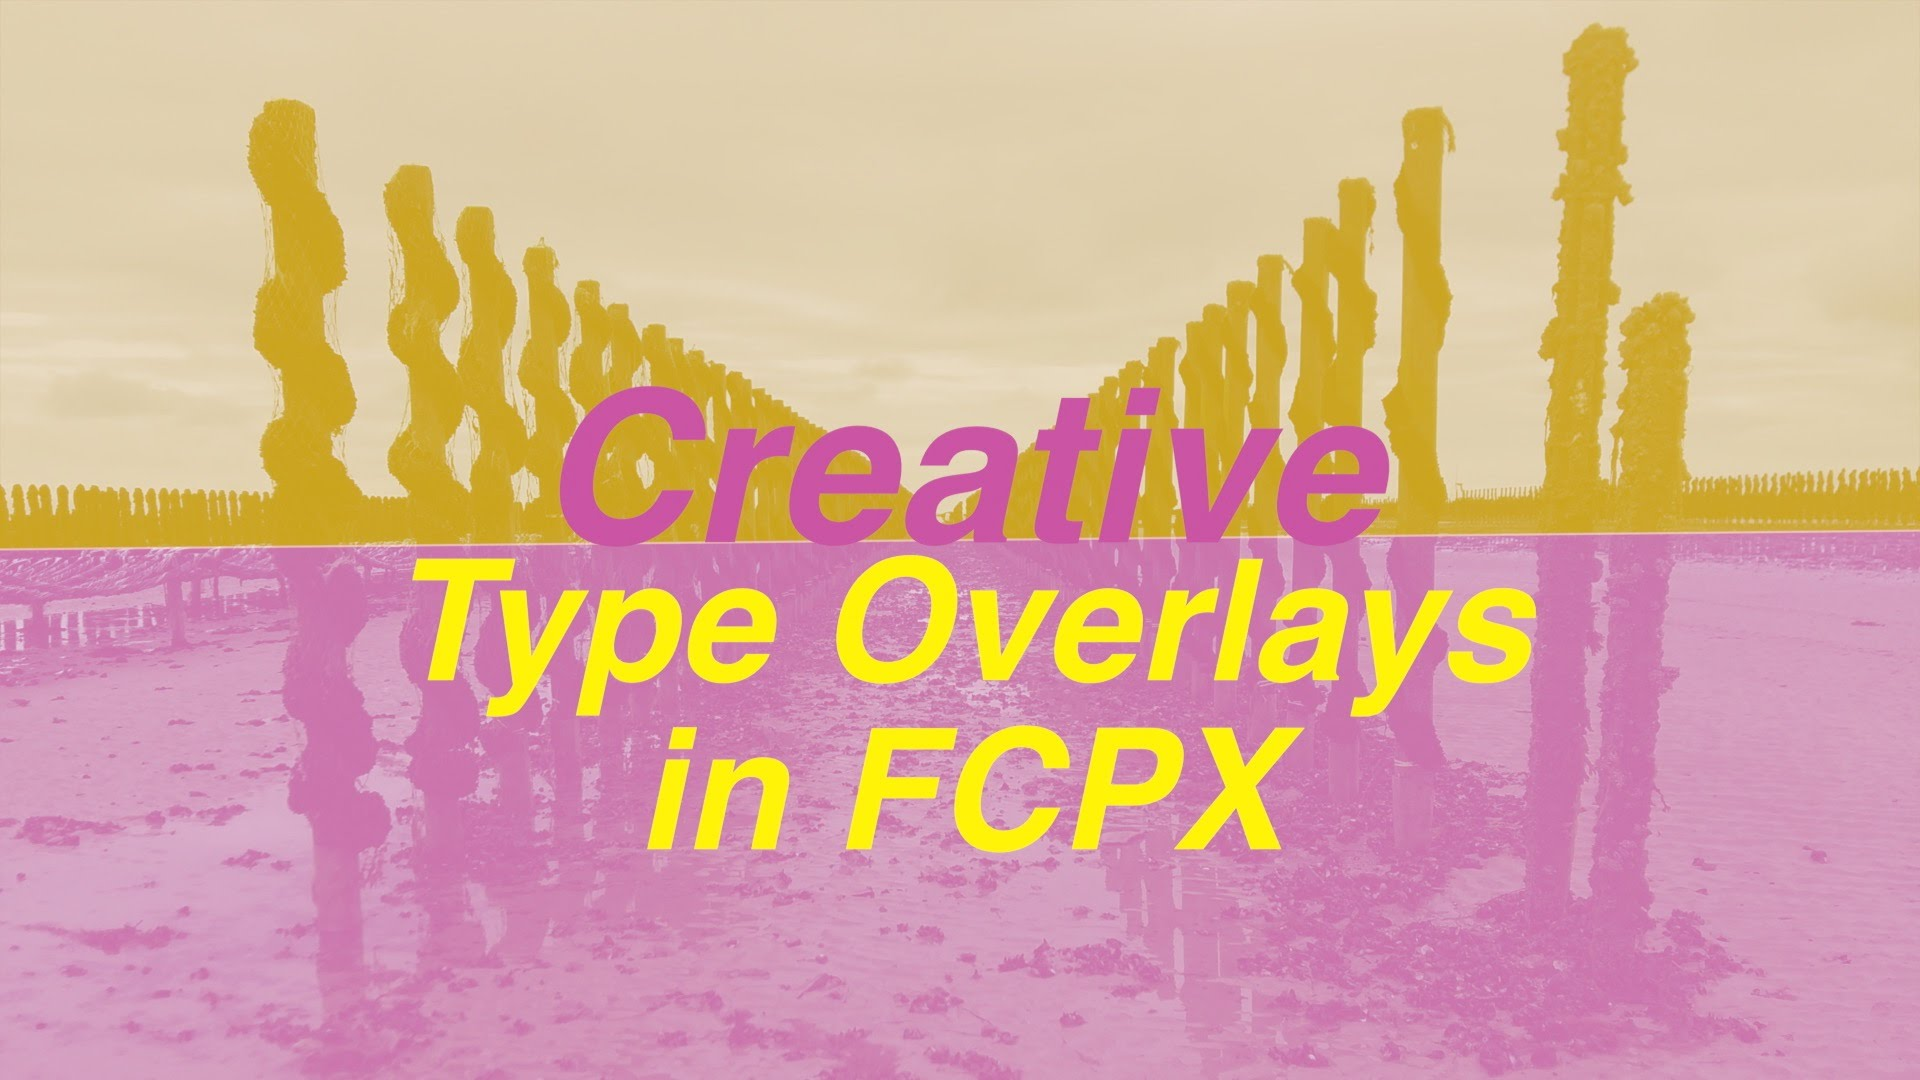 Final Cut Pro X Tutorial: Creative Type Overlays for Titles #fcpx